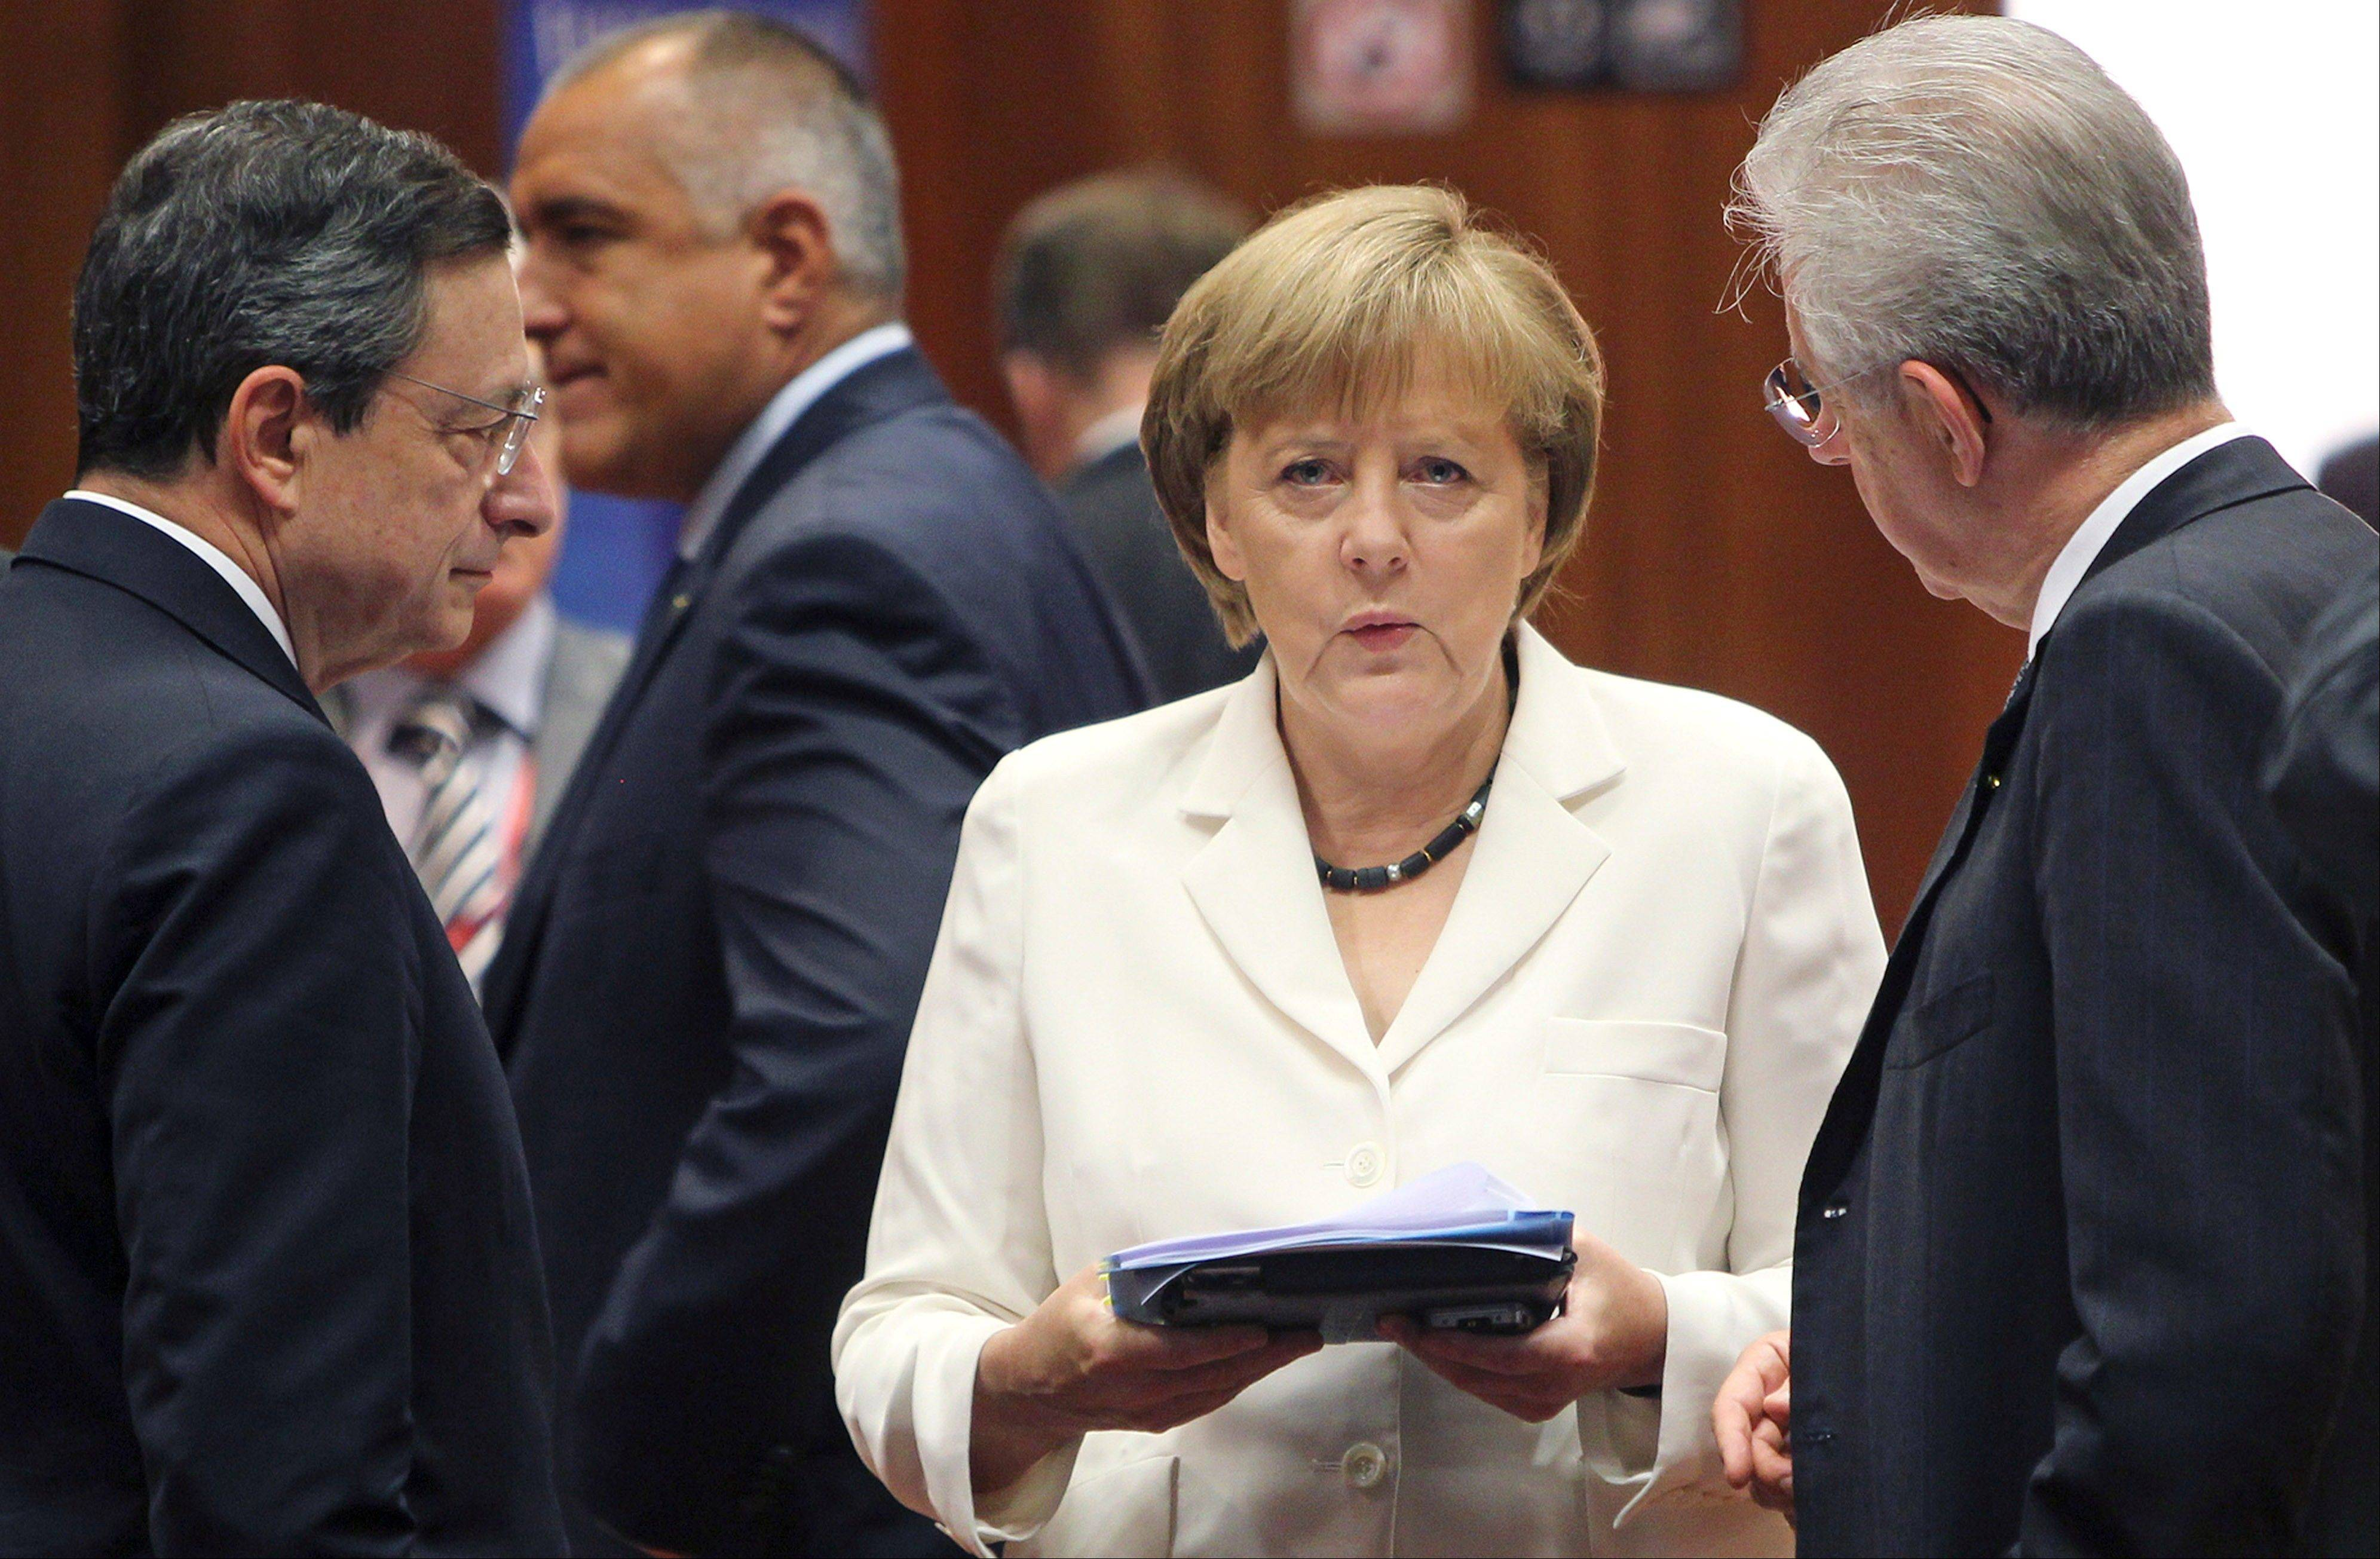 German Chancellor Angela Merkel, center, speaks with European Central Bank President Mario Draghi, left, and Italian Prime Minister Mario Monti during a round table meeting at a EU Summit in Brussels. The worst of Europe's financial crisis appears to be over.